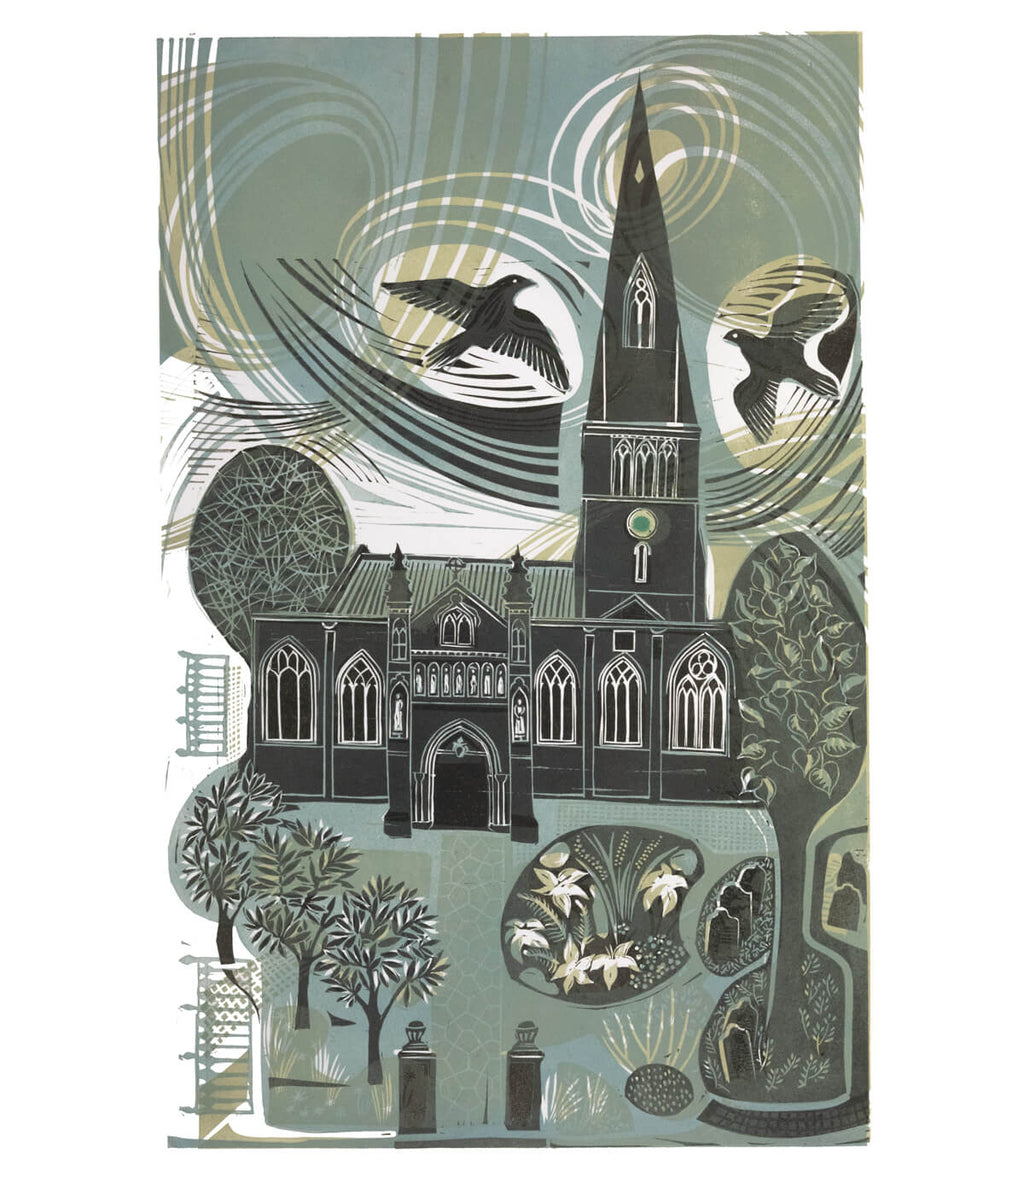 The Cathedral, The Gardens and The Peregrines in Blue/Grey, a linocut print by Sarah Kirby